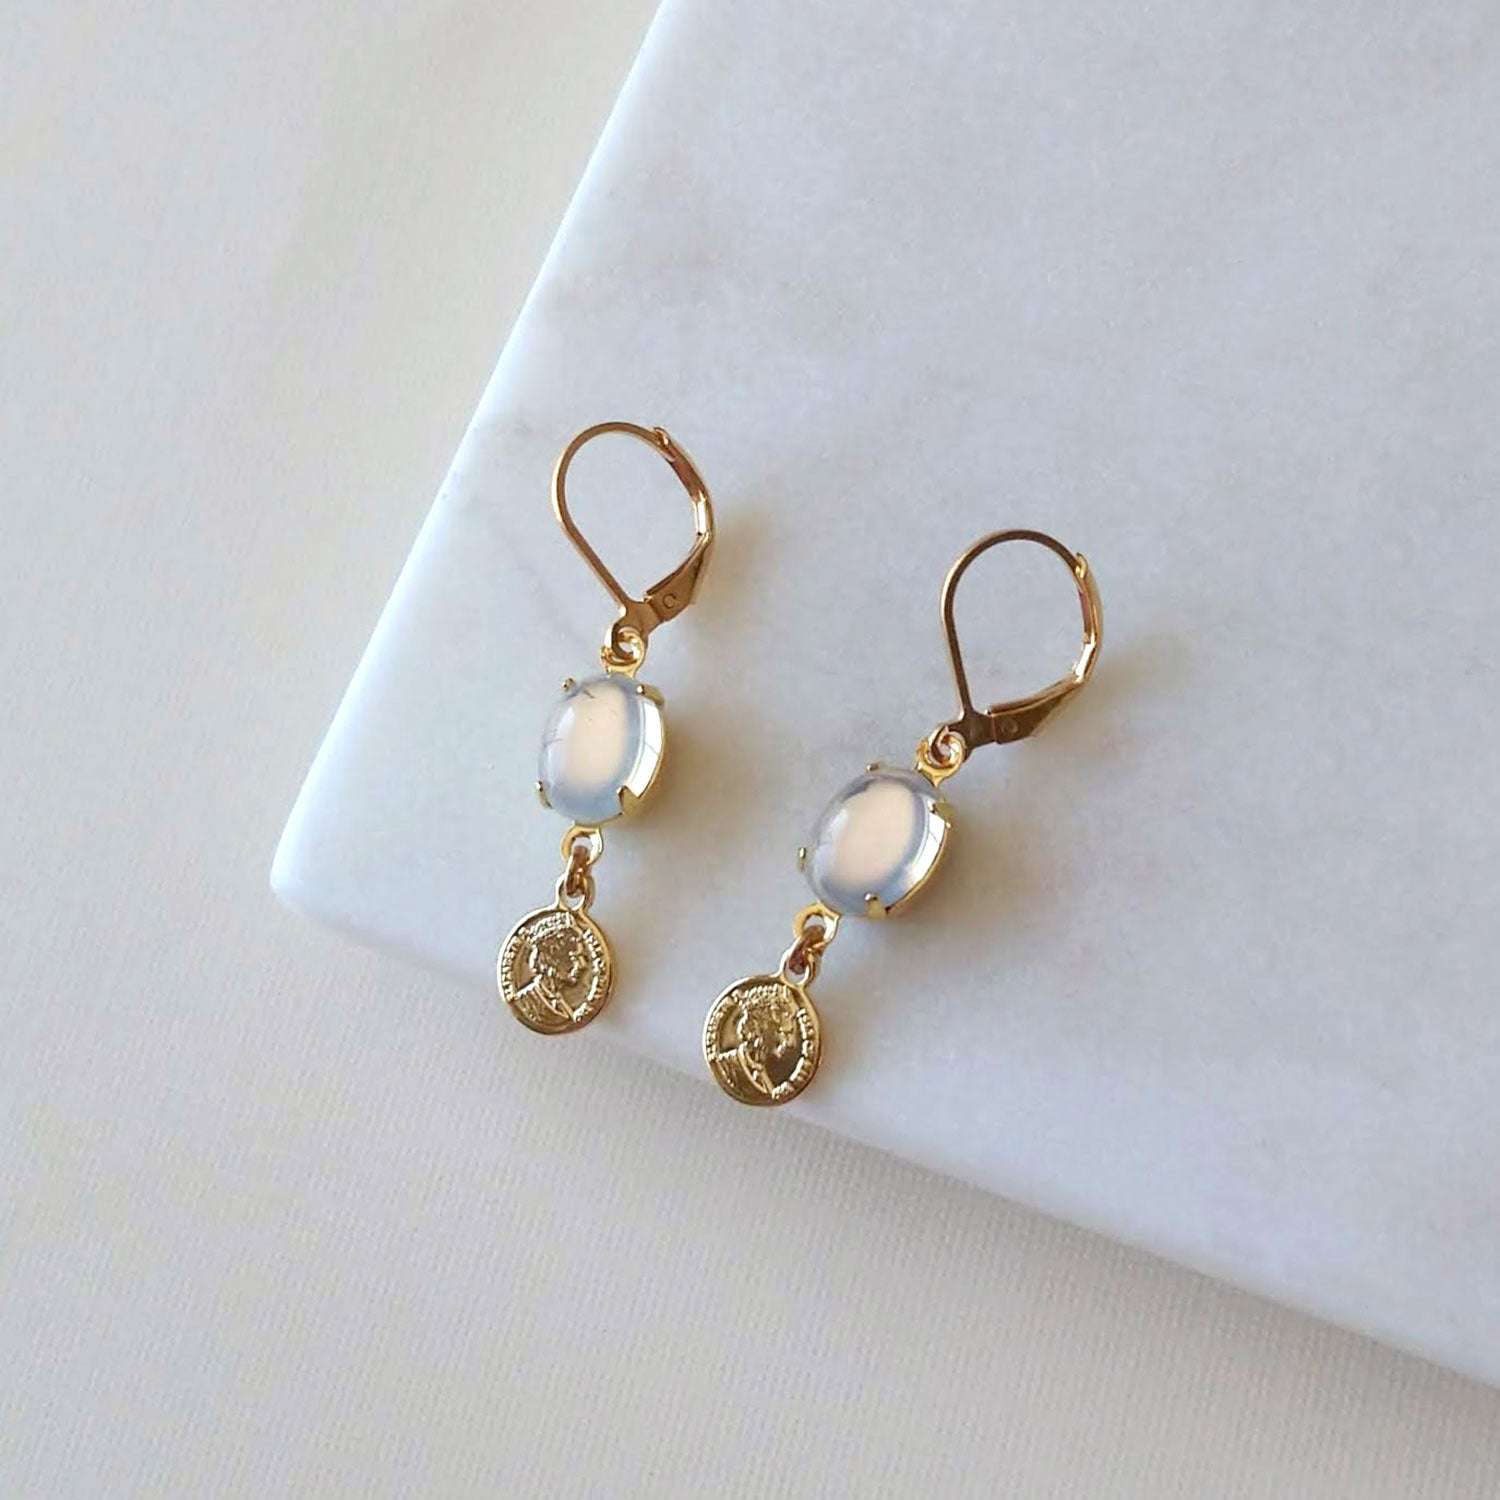 lucky charm earrings coin